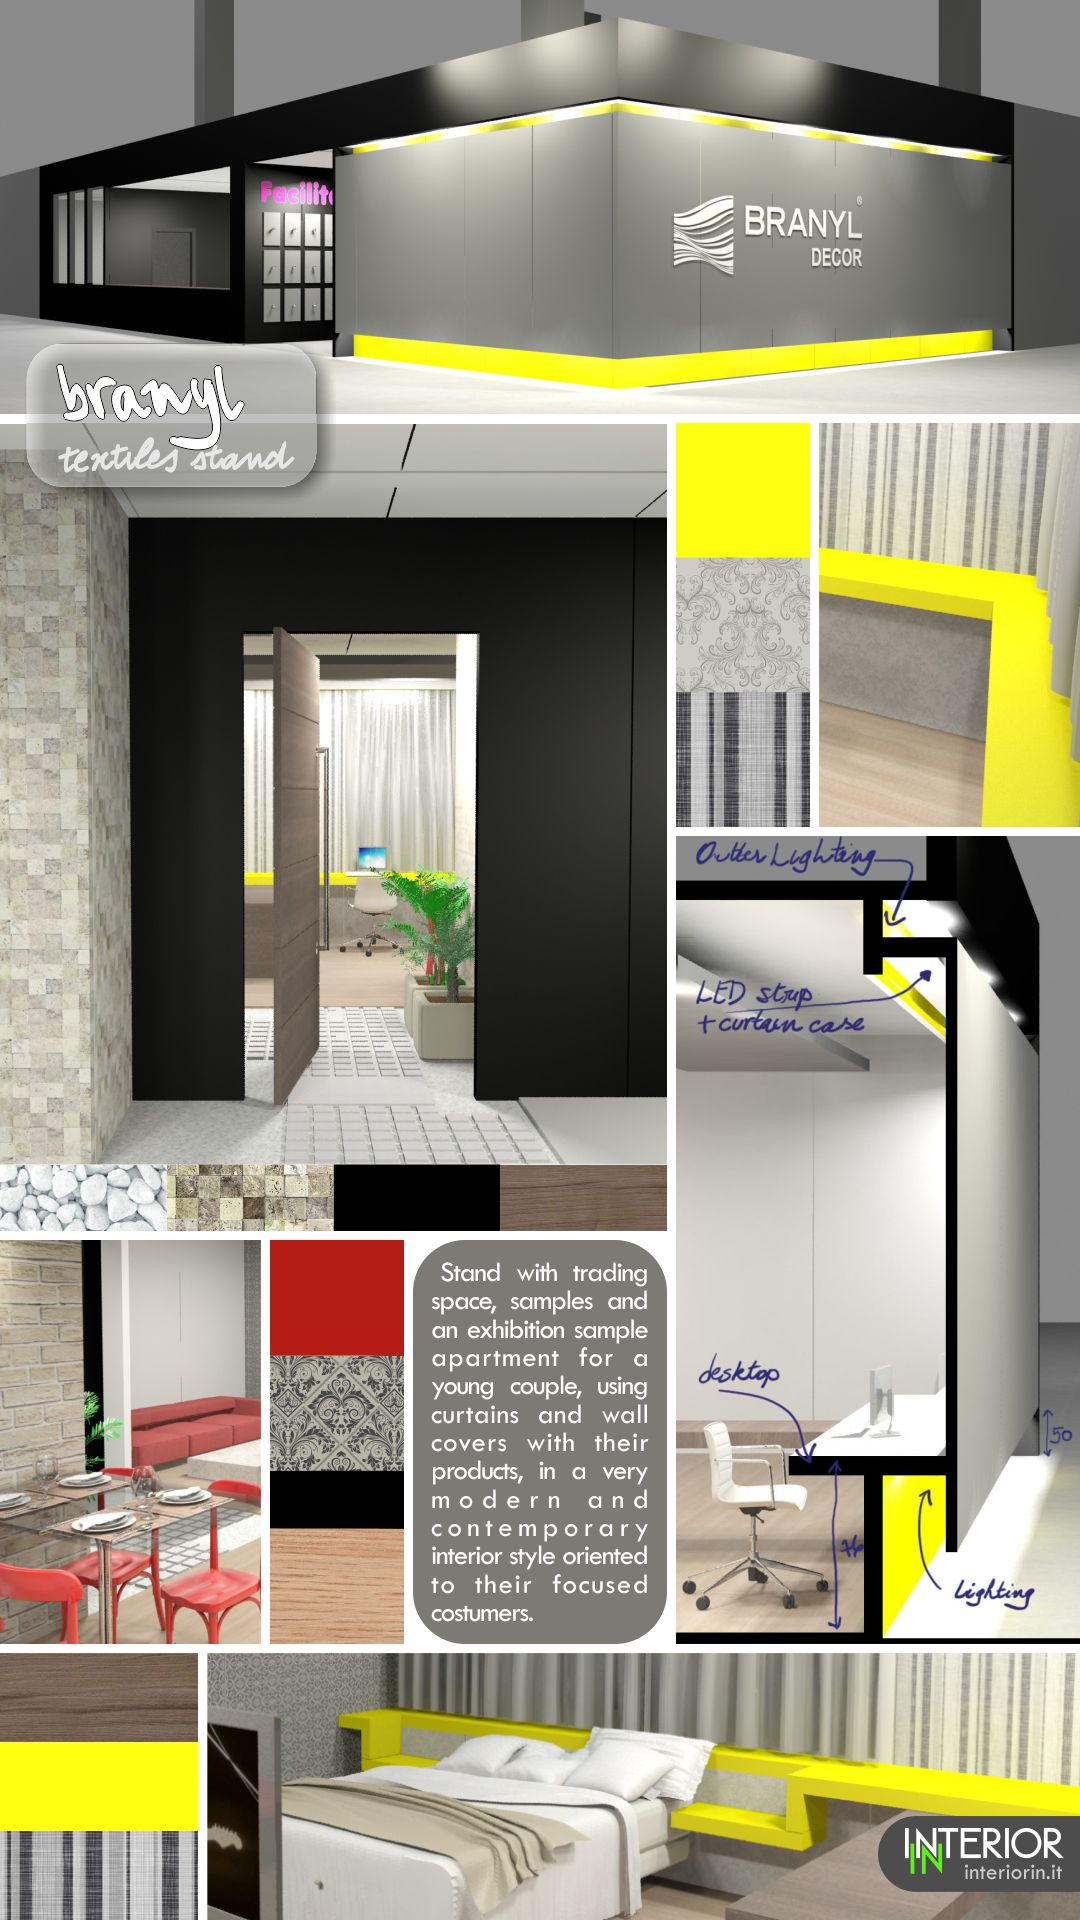 Moodboard for exhibition stand with a simulated modern home